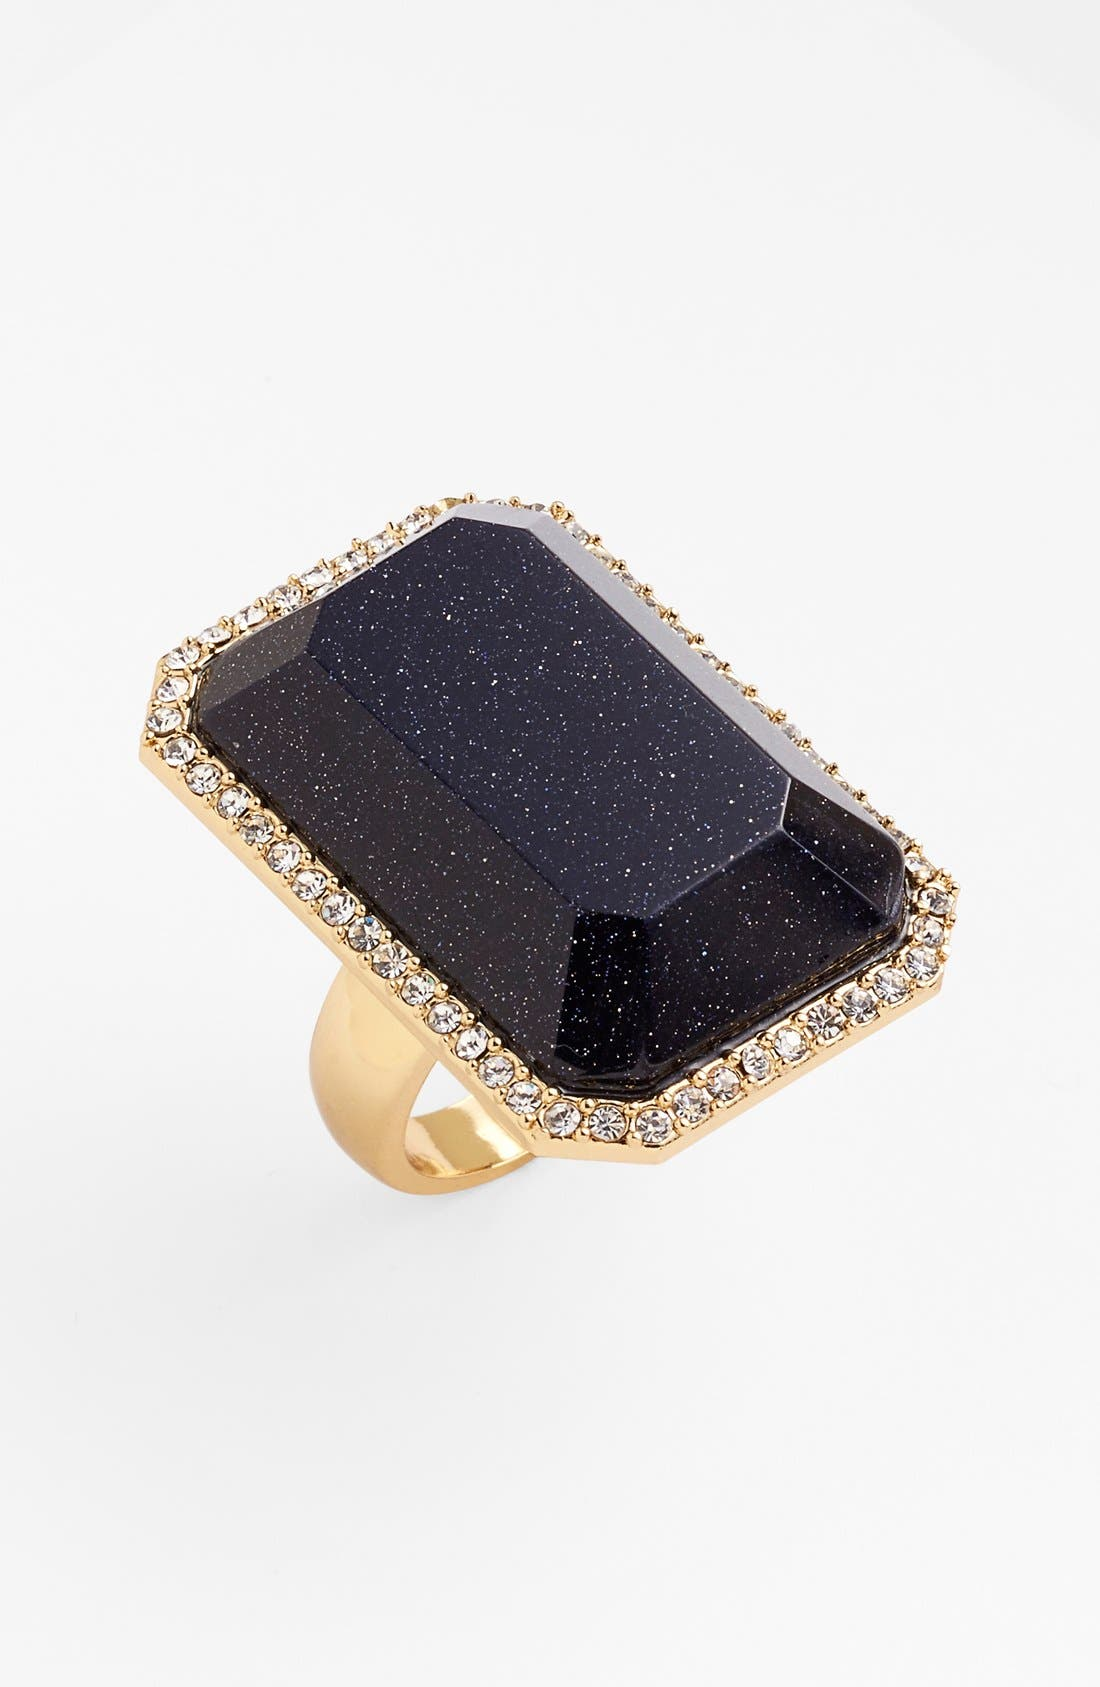 Main Image - kate spade new york 'night sky jewels' semiprecious stone ring